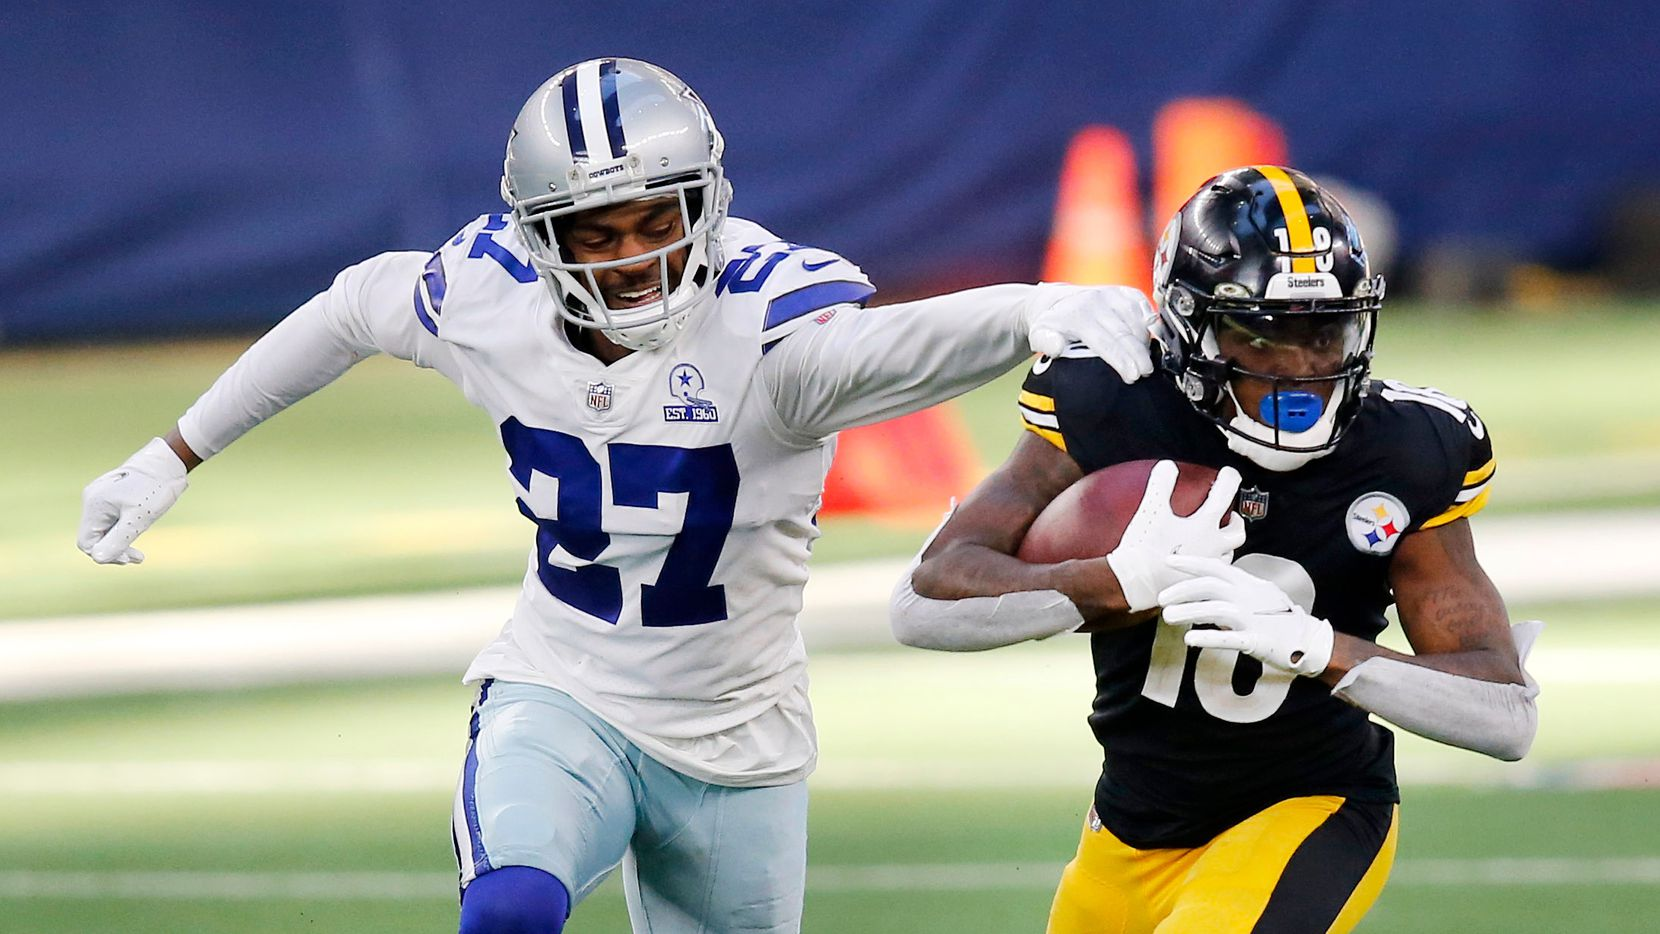 Cowboys cornerback Trevon Diggs (27) tries to tackle Steelers wide receiver Diontae Johnson (18) during the second quarter of a game at AT&T Stadium in Arlington on Sunday, Nov. 8, 2020.